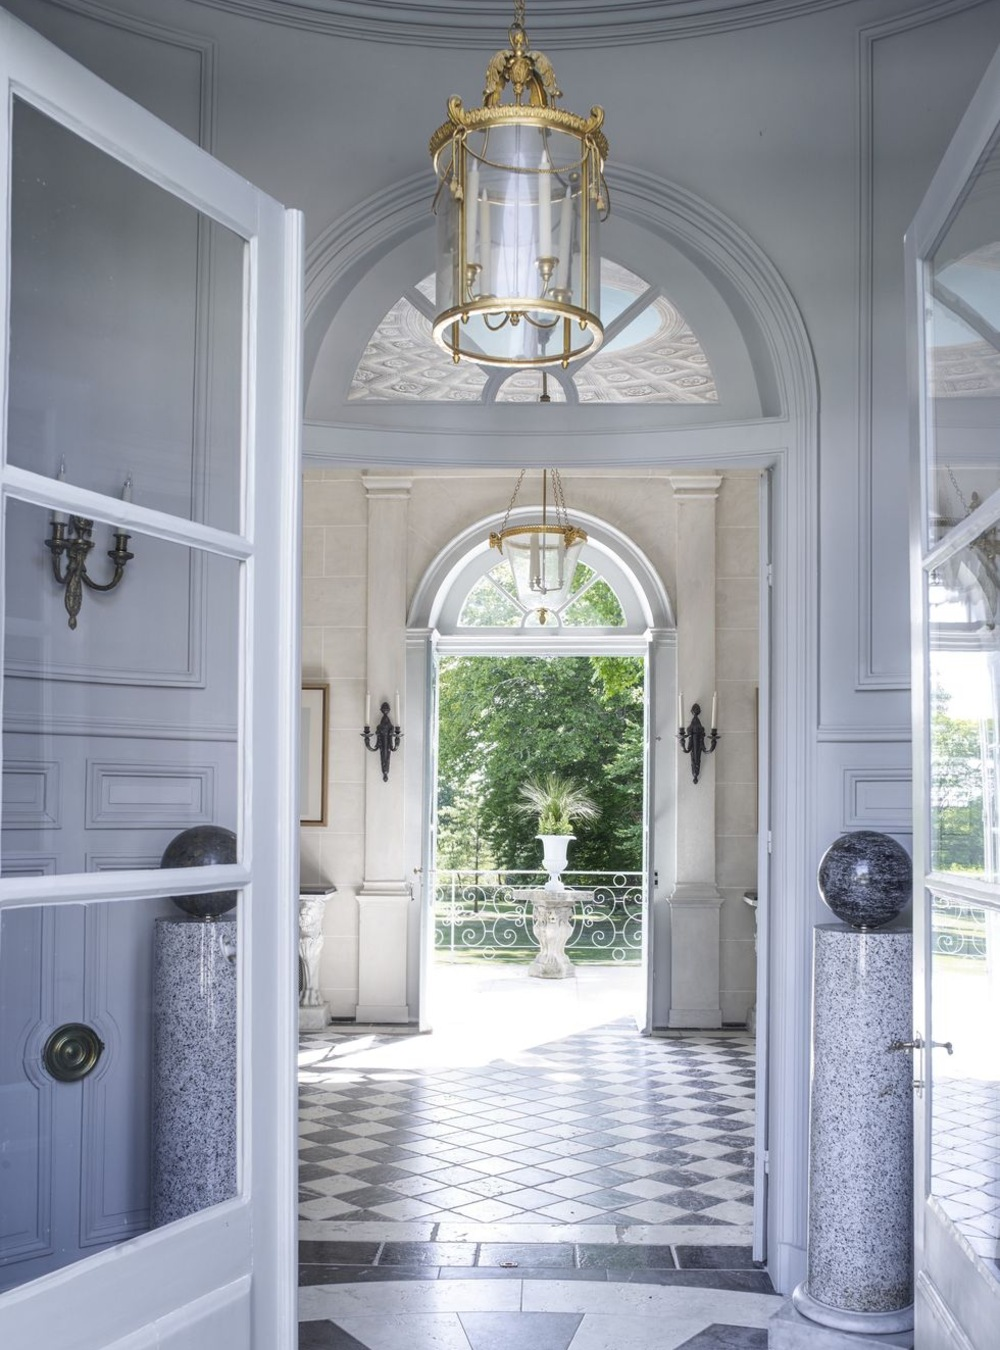 entryway lighting ideas 22 Outrageously Stunning Entryway Lighting Ideas 22 Outrageously Stunning Entryway Lighting Ideas 1 10